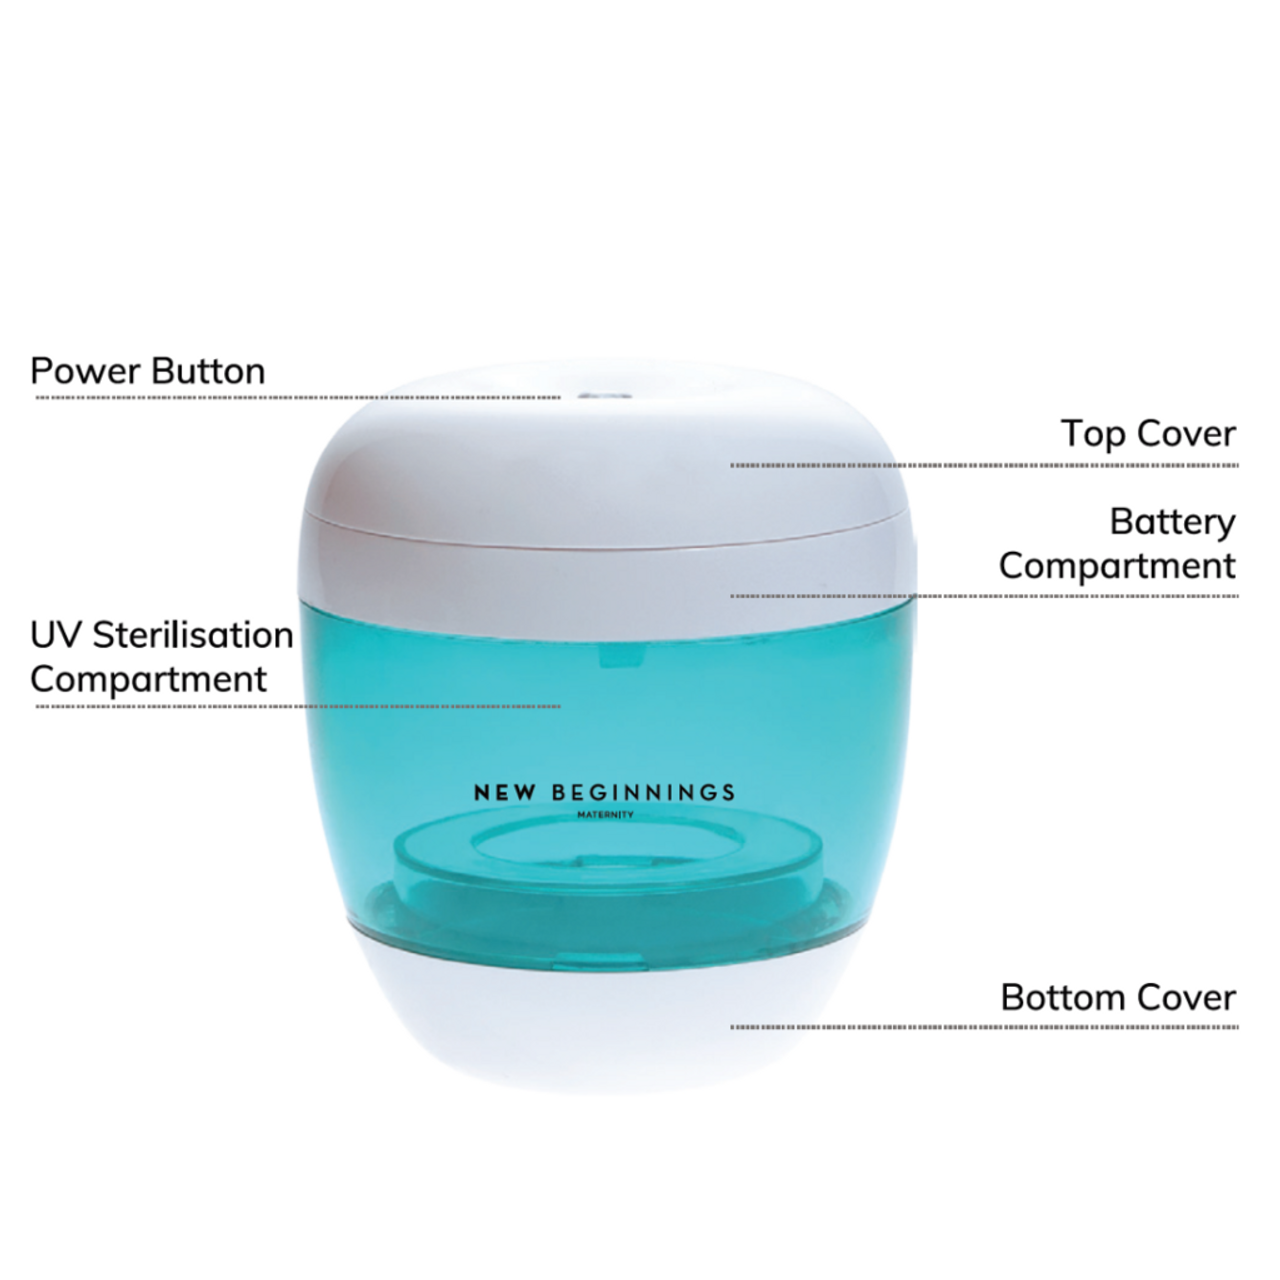 New Beginnings Portable 4-in-1 UV Steriliser at Baby Barn Discounts Easy and compact UV Steriliser allows you to eliminate 99.9% of germs and bacteria from bottles & teats